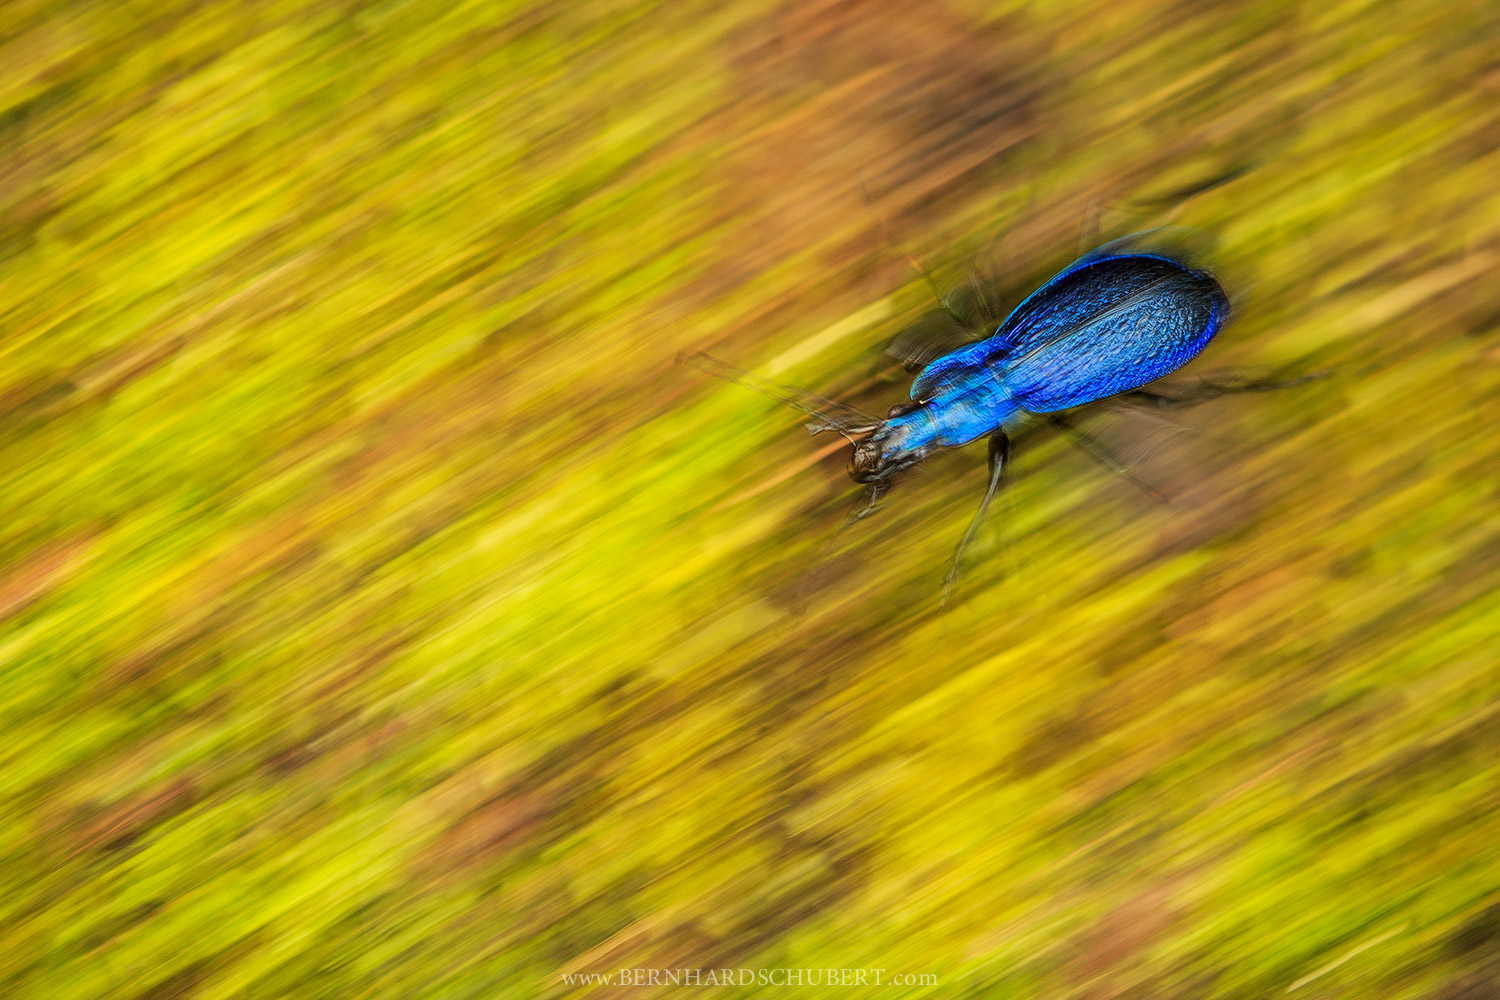 Ble ground beetle